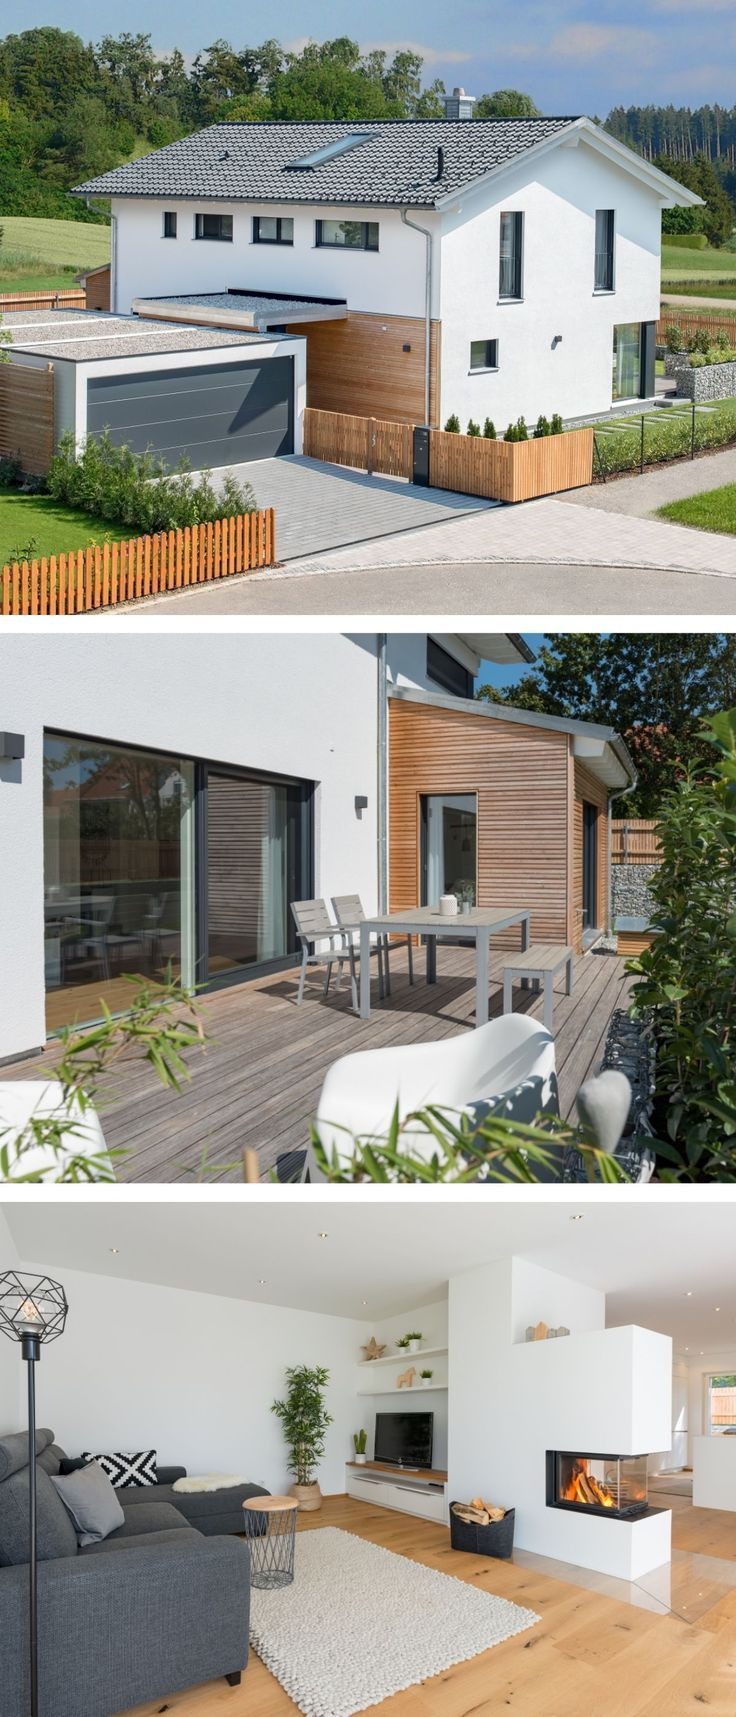 Modern detached house with garage, wood facade & saddle ...